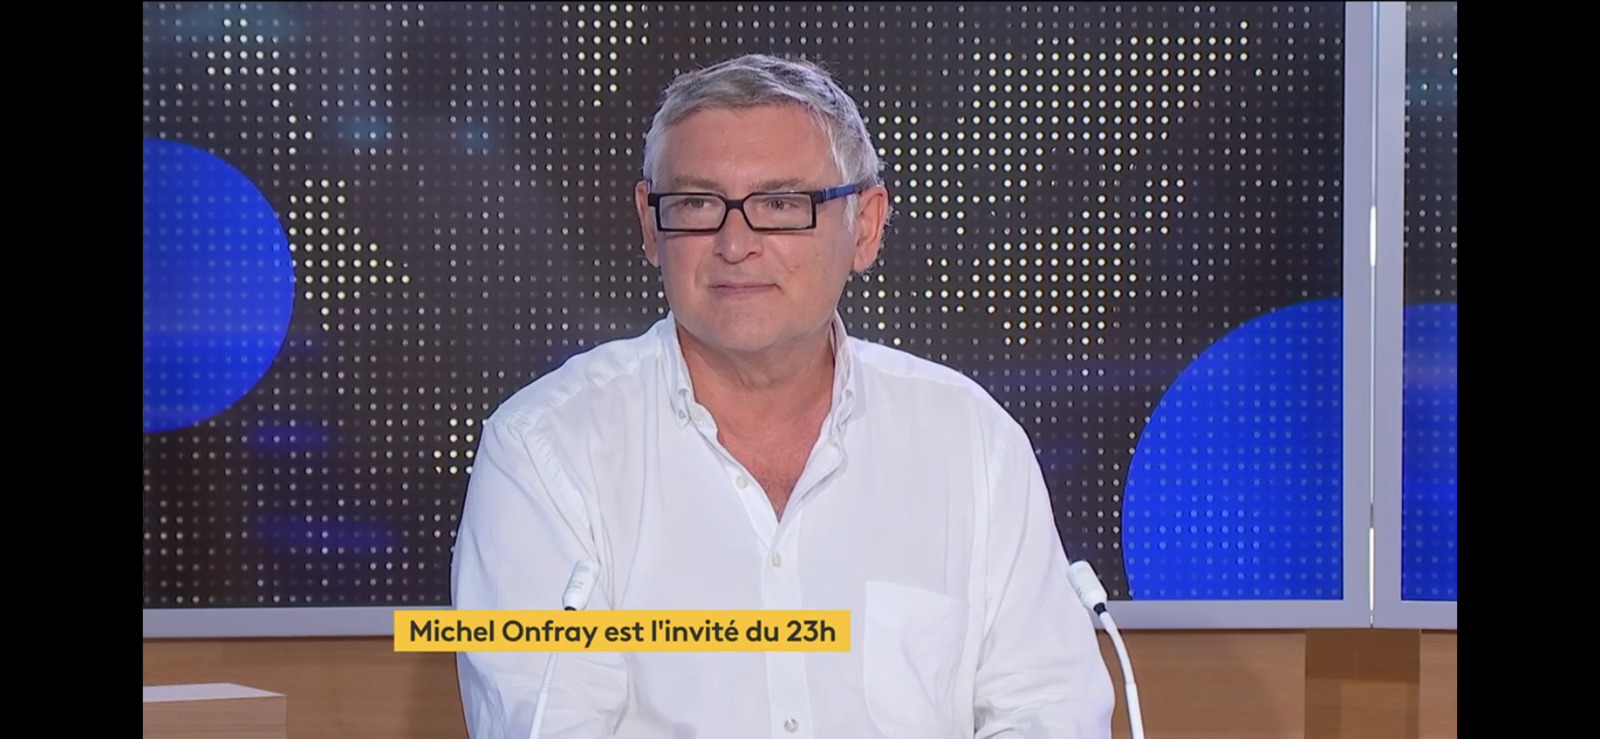 Michel Onfray - Le 23h (France Info) - 24.08.2021